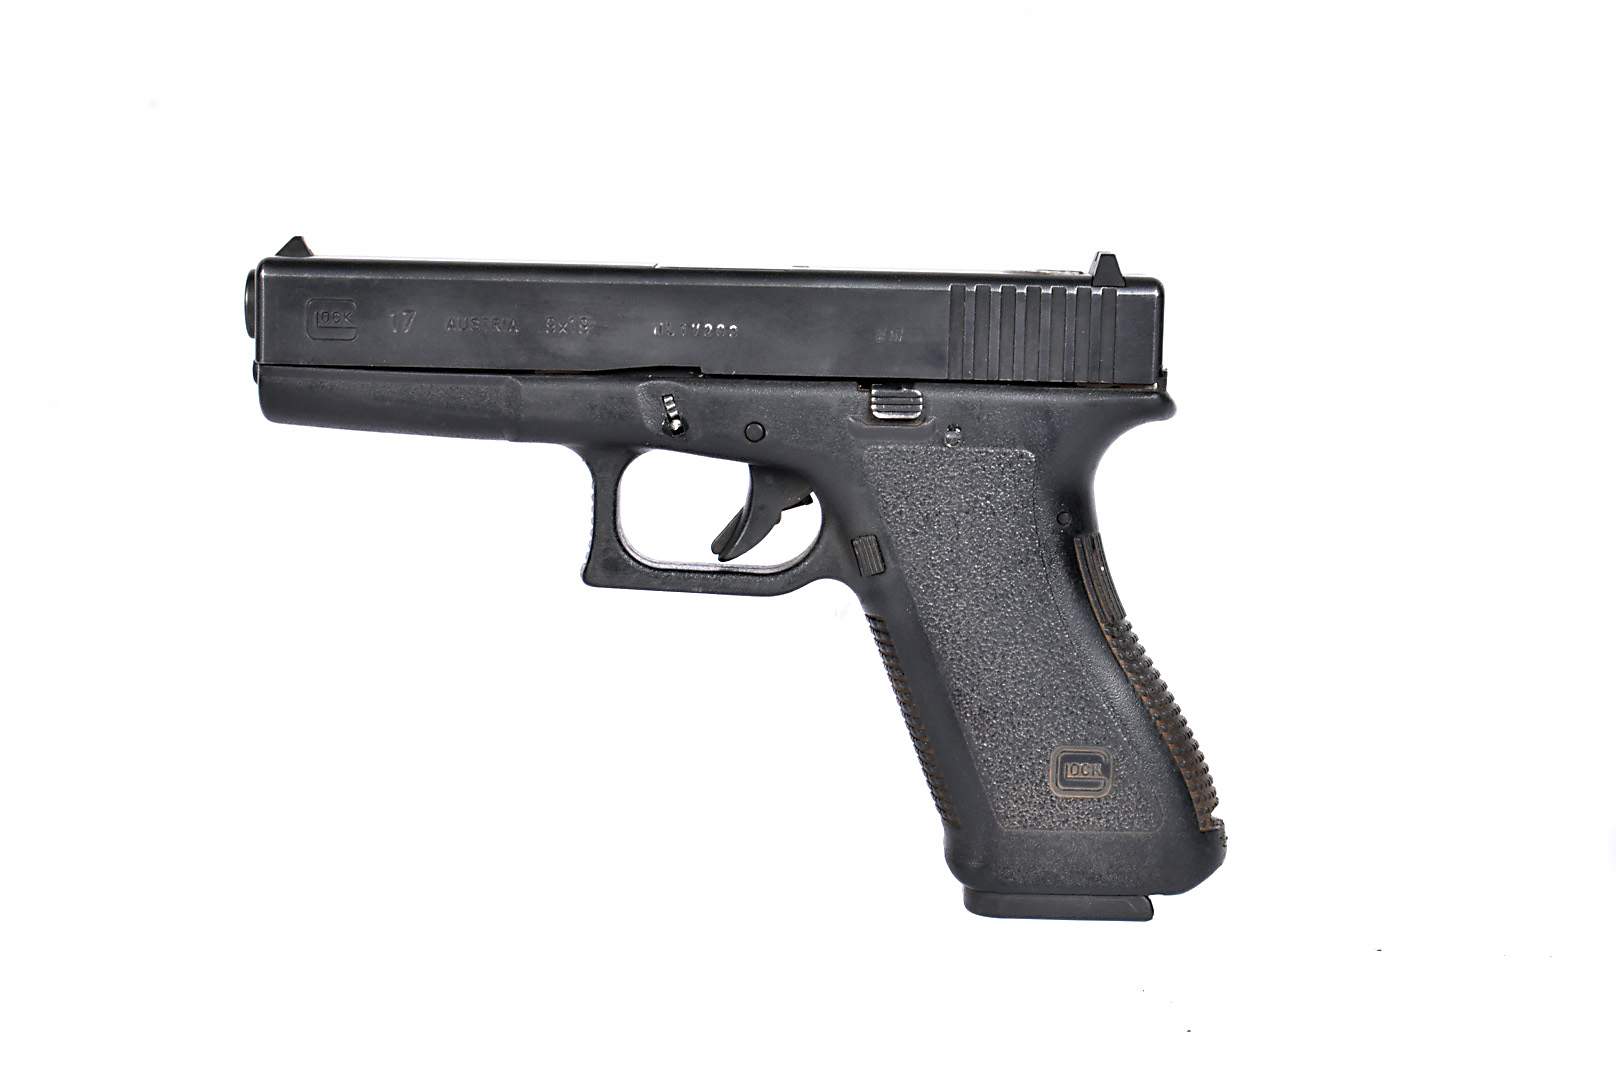 A Deactivated Glock 17 9mm Second Generation pistol, serial NL17203, deactivated to the latest EU